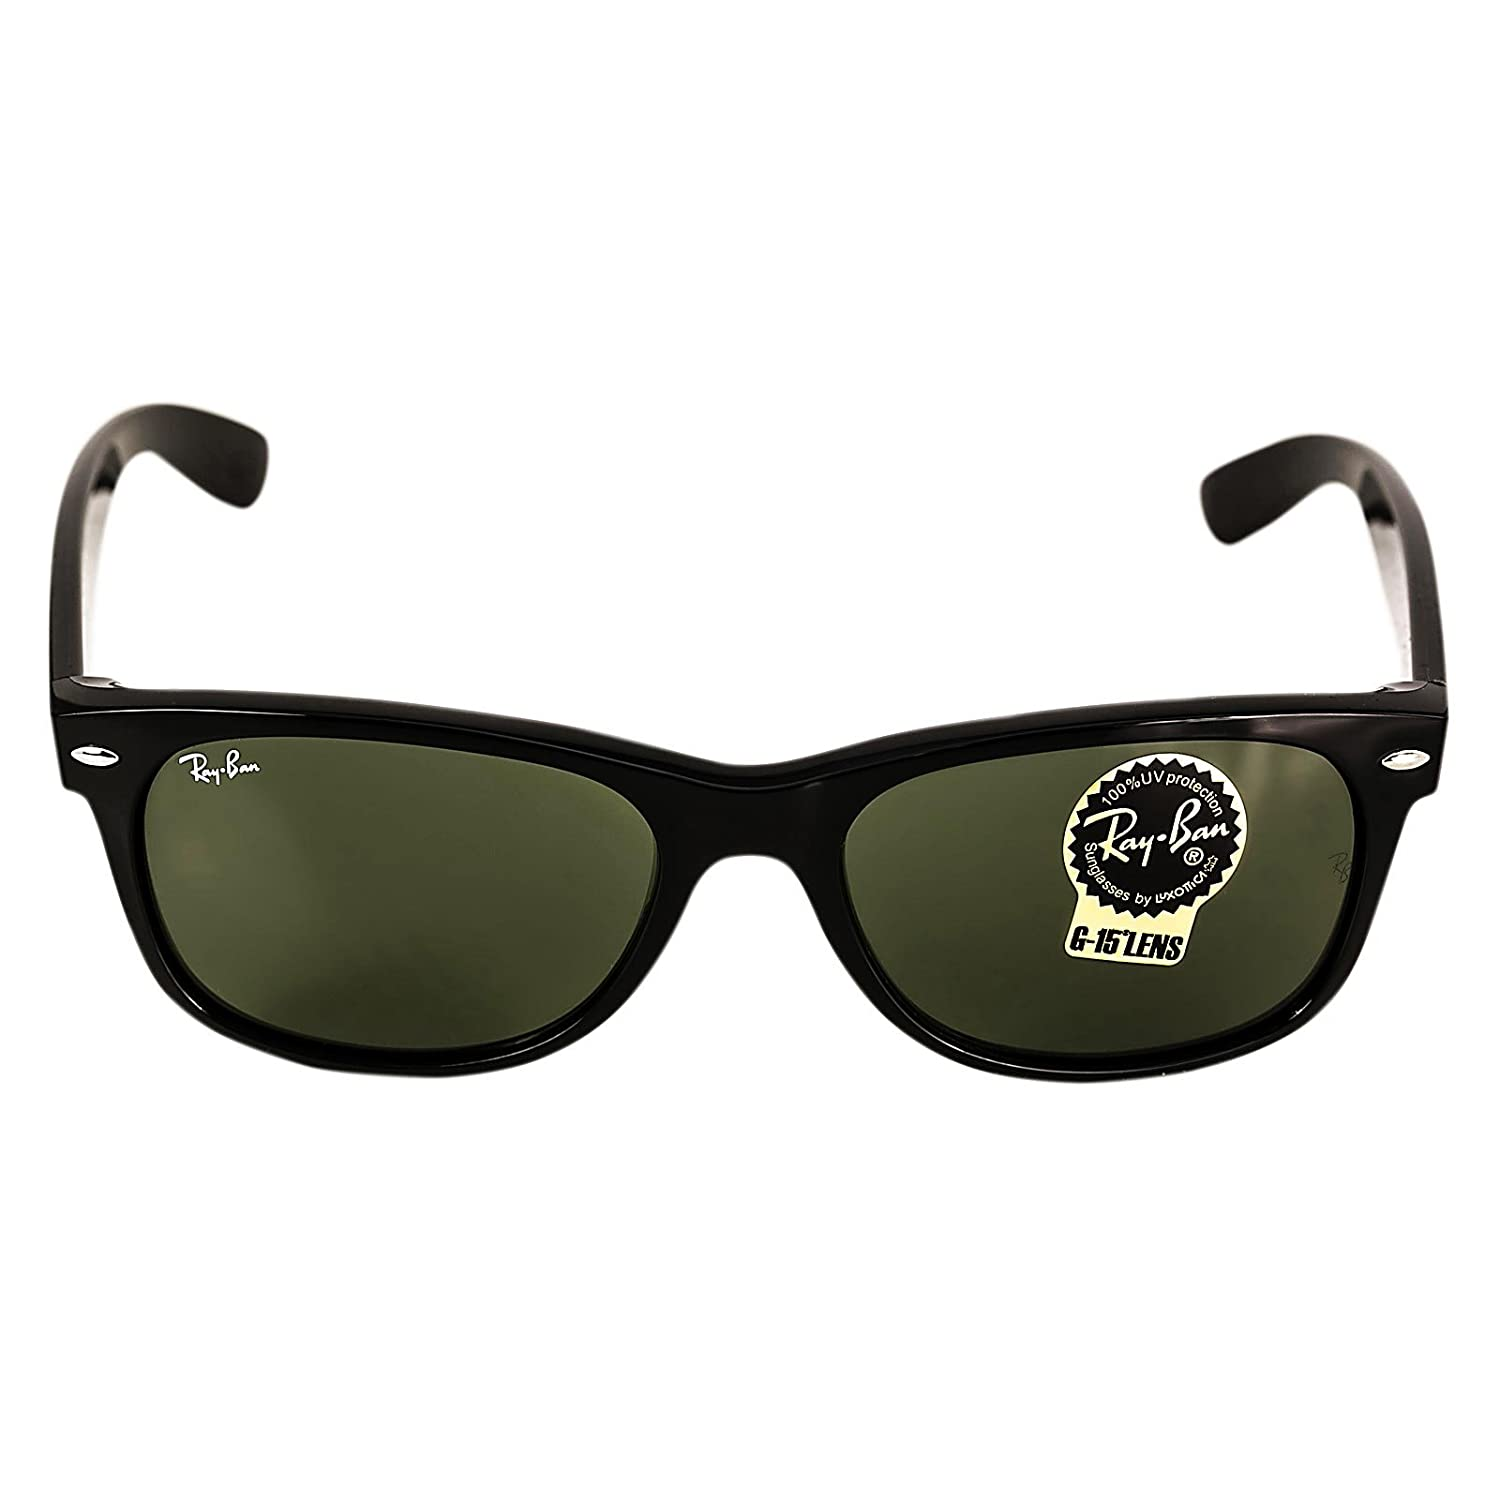 Amazon.com: Ray Ban Wayfarer RB2132 901L Black/G-15 XLT 55mm Sunglasses: Shoes